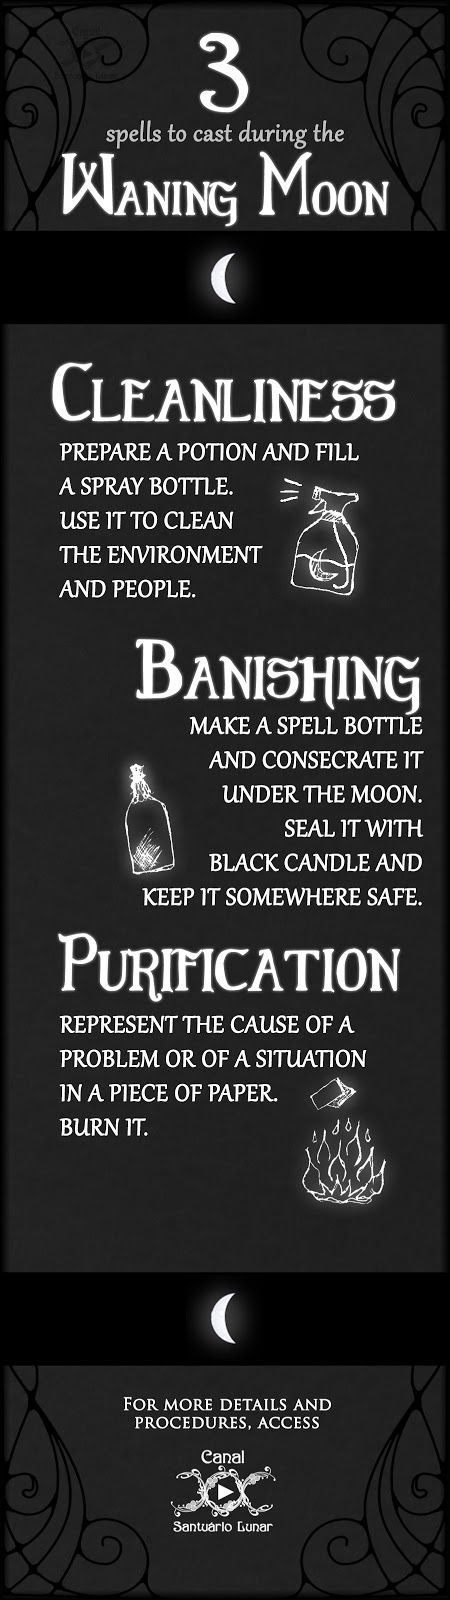 ☽✪☾...3 spells for the Waning Moon | Magic, Witchcraft, Paganism, Wicca